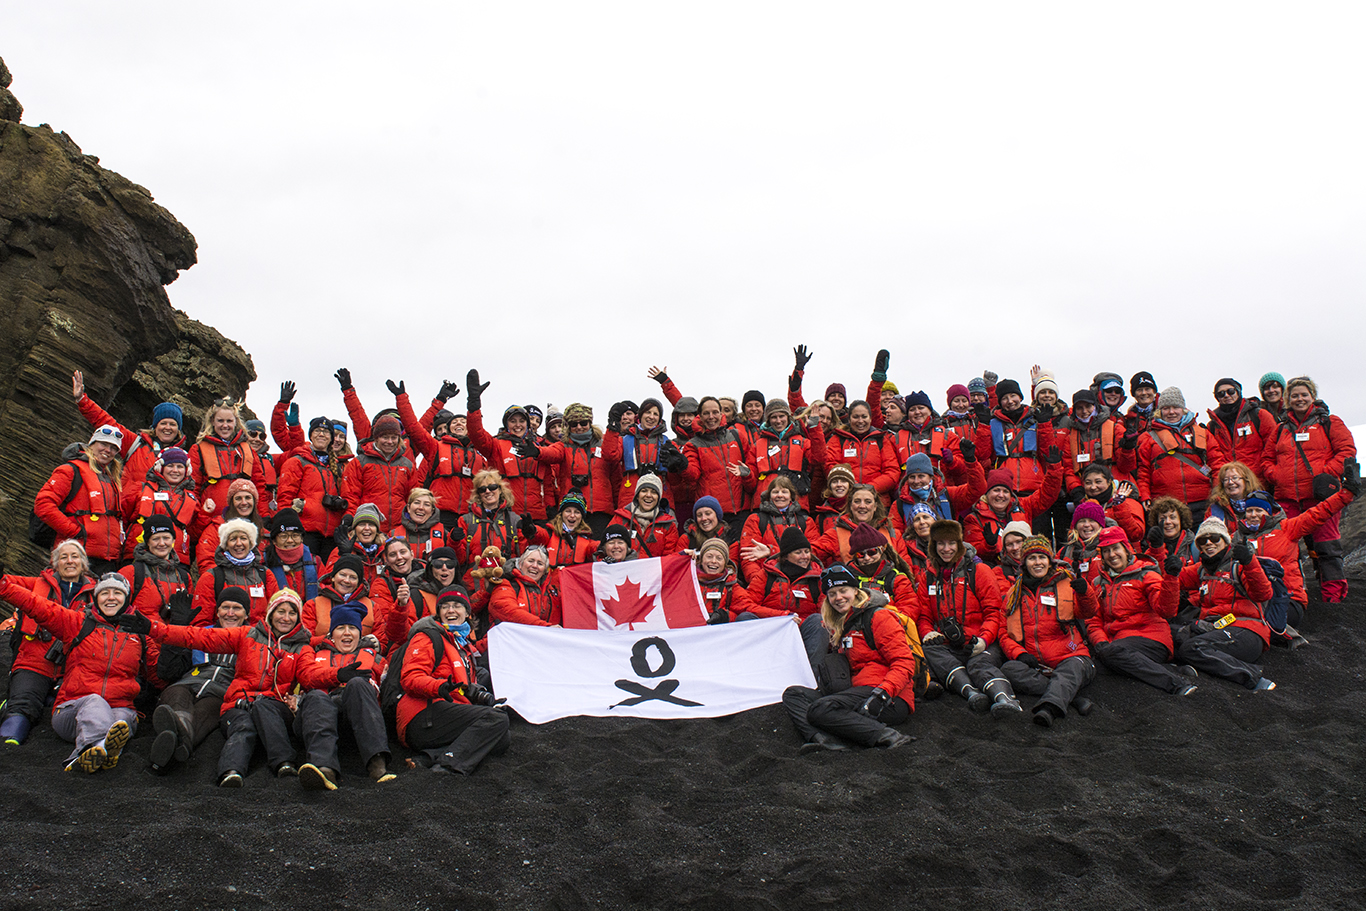 The 76 Women and staff of the homeward bound women in science leadership expedition to antarctica (deception island, antarctica)